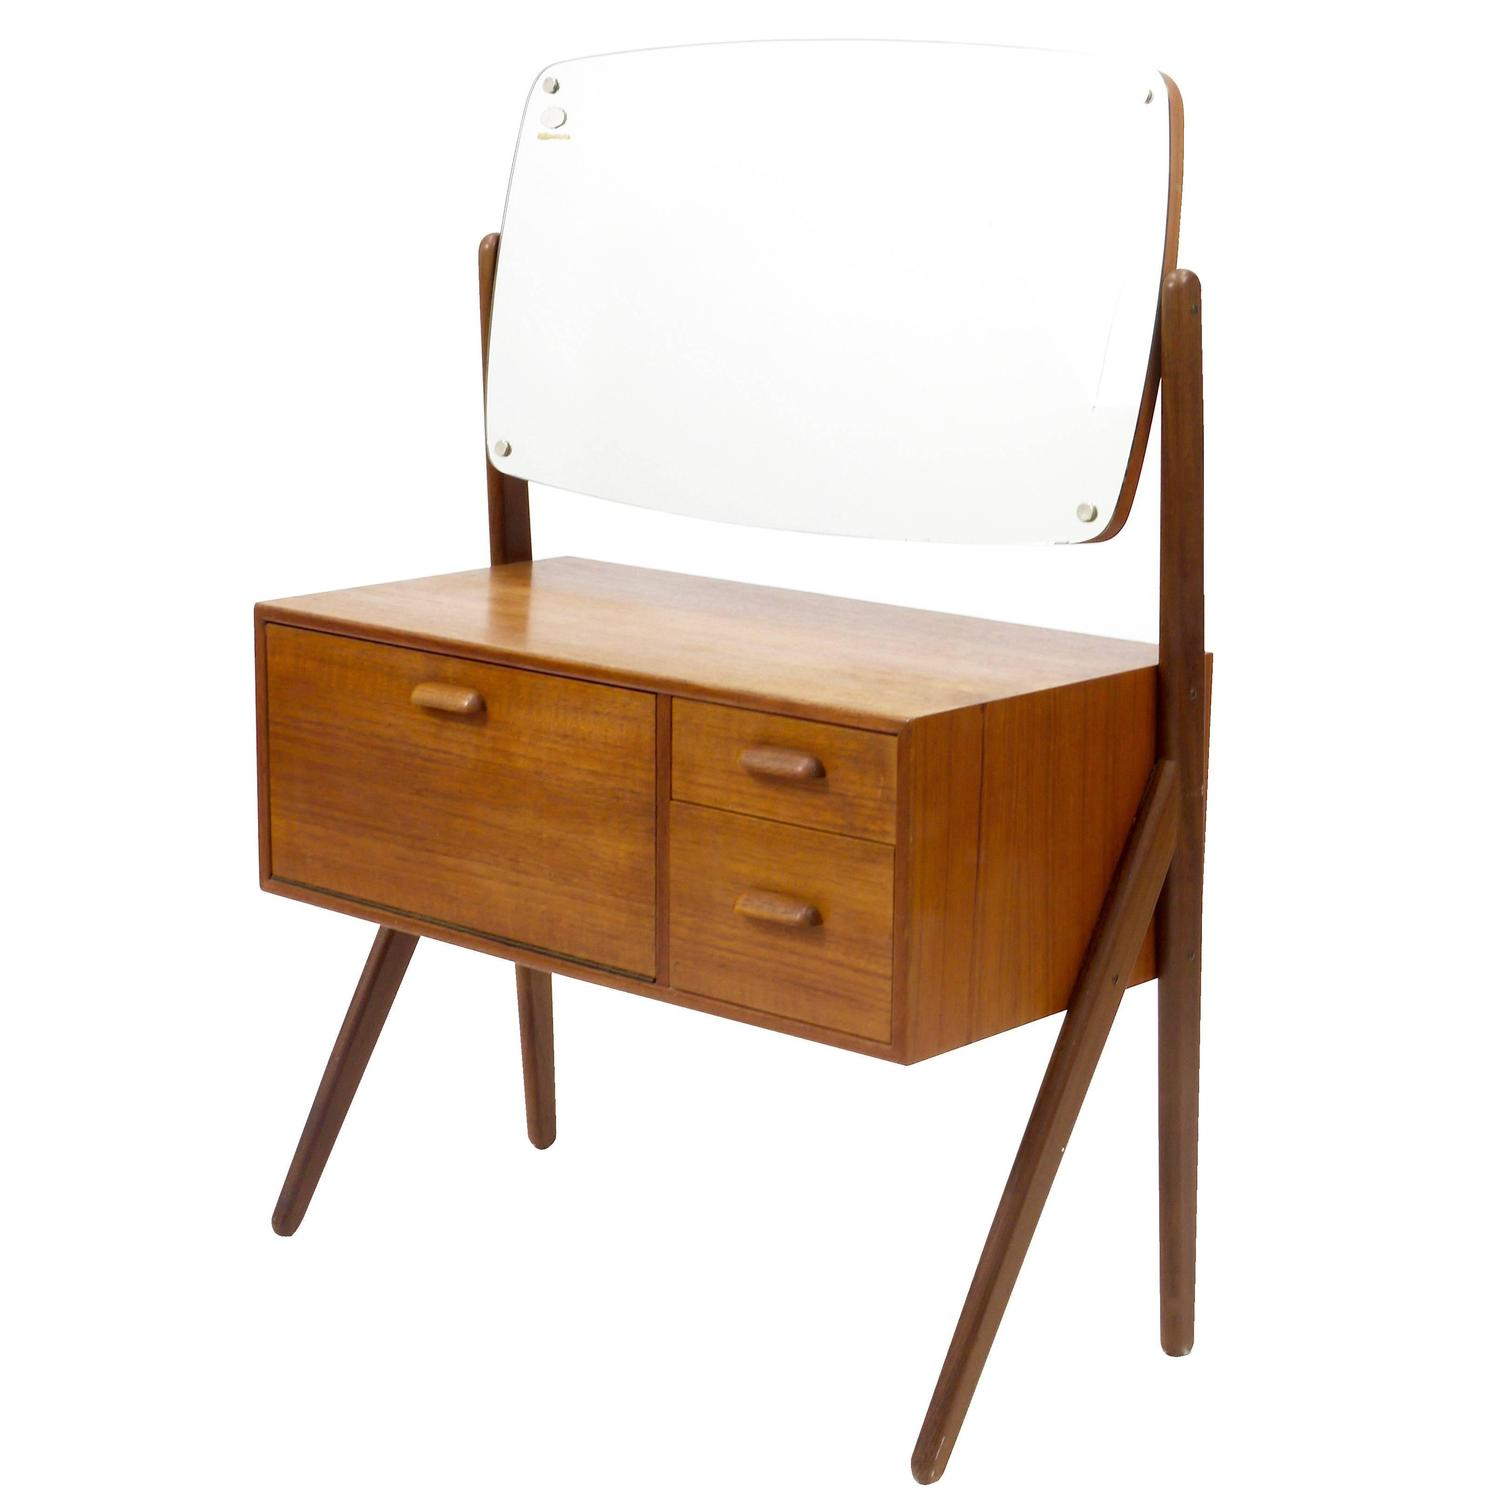 Delicieux Danish Modern Teak Vanity Table With Drawers, 1950s